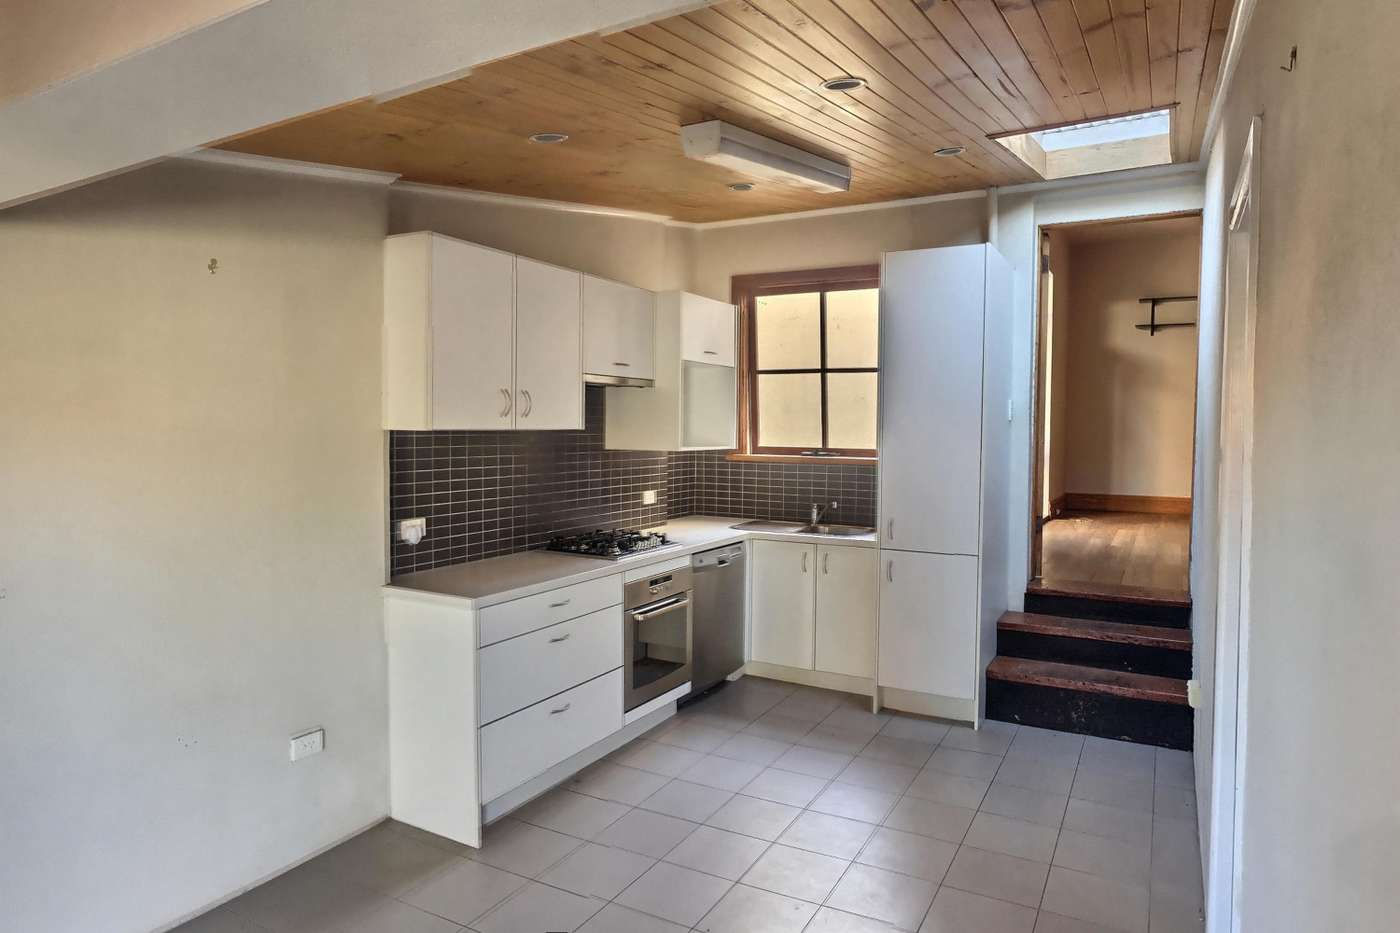 Main view of Homely house listing, 463 Victoria Street, West Melbourne, VIC 3003